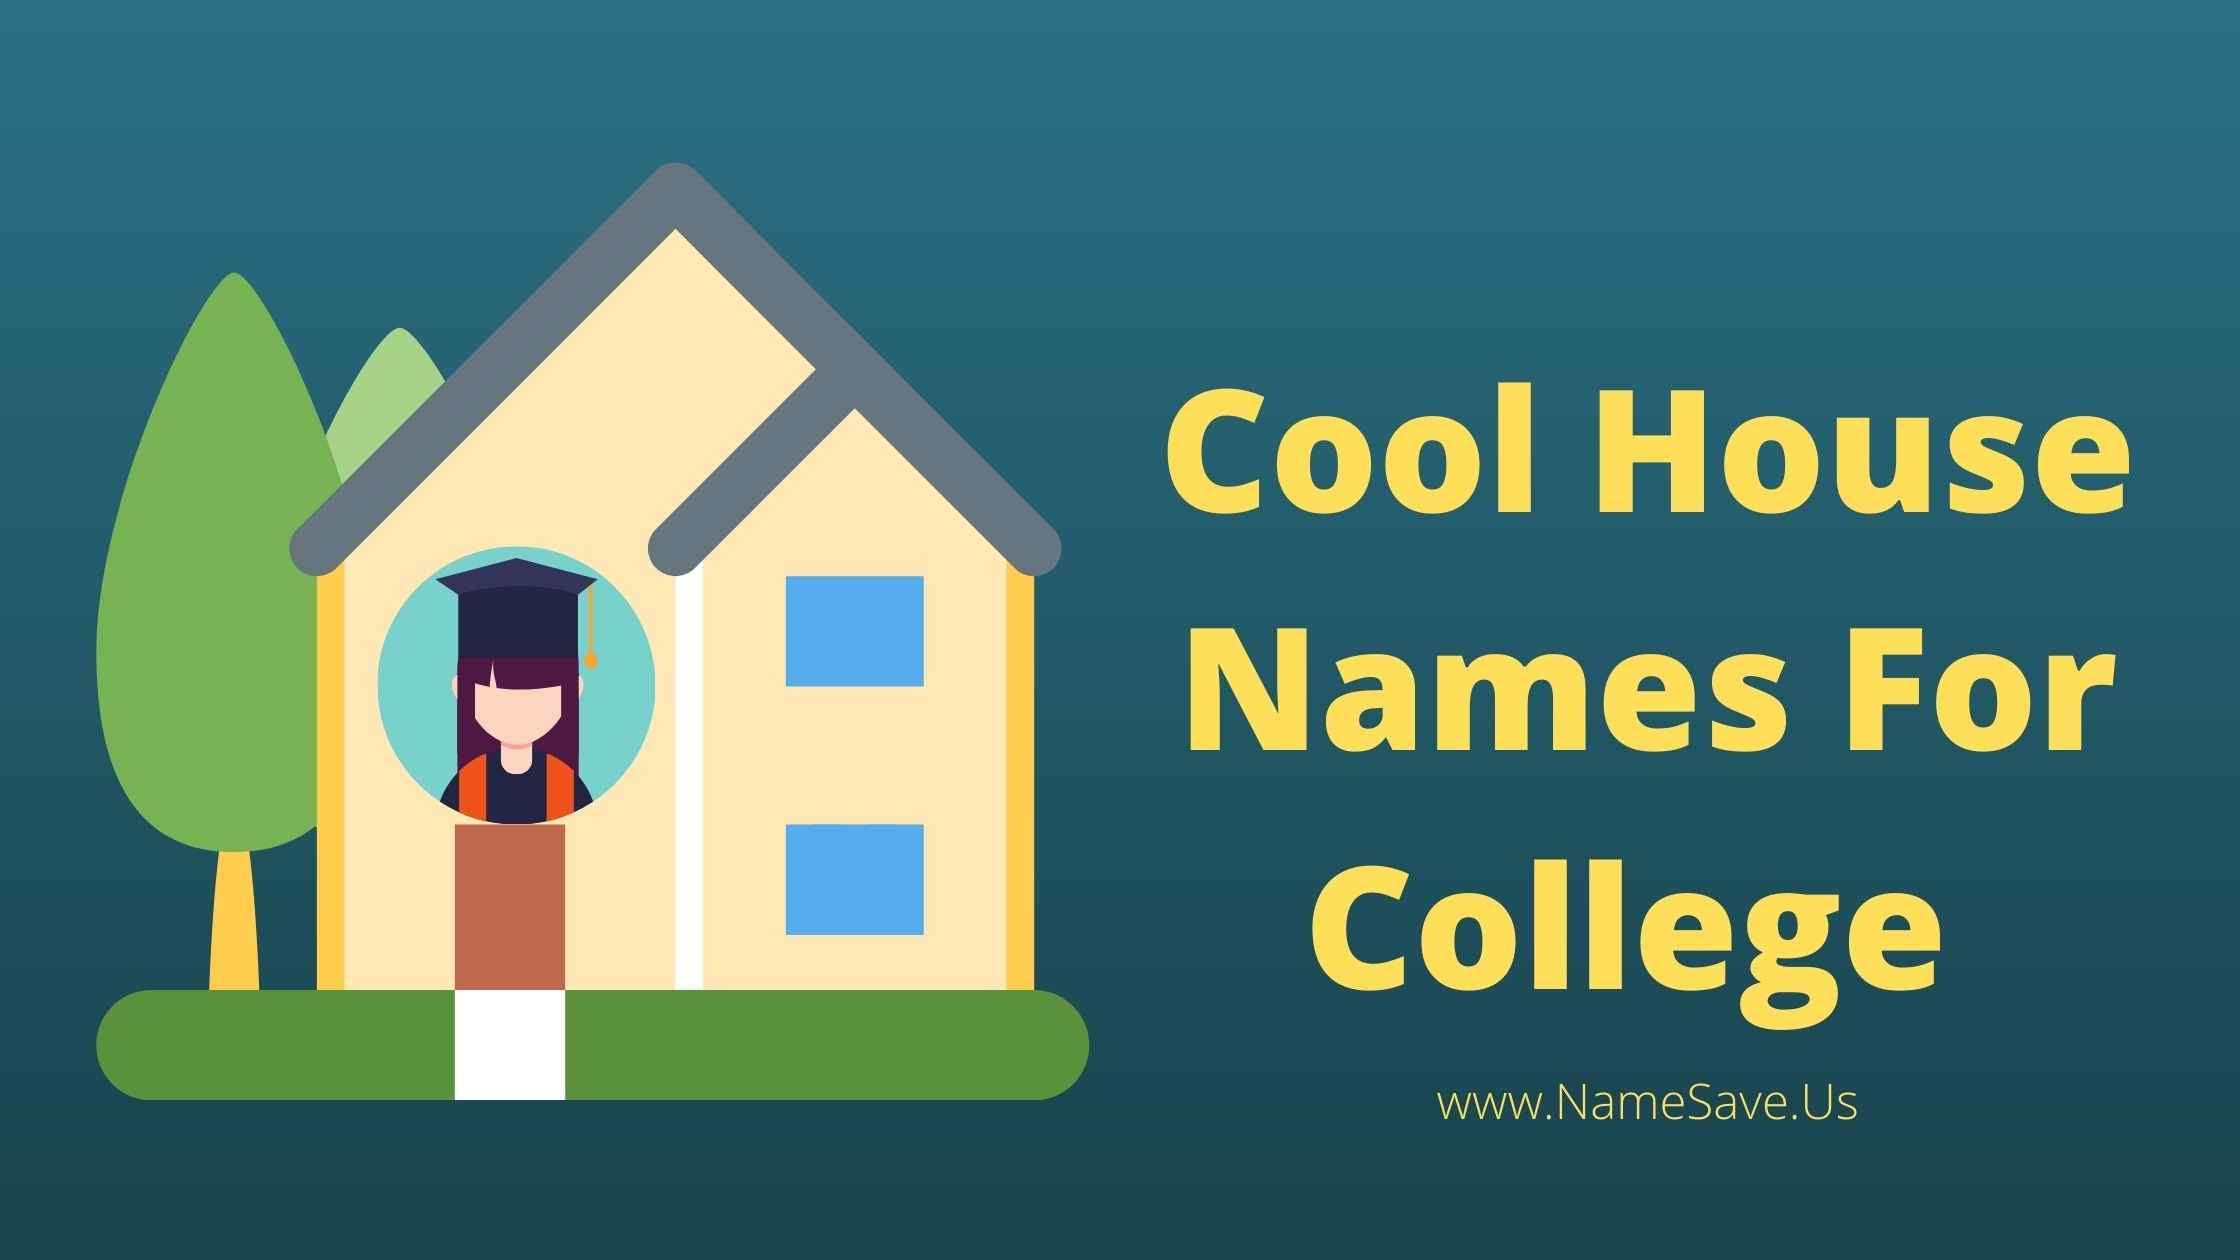 Cool House Names For College